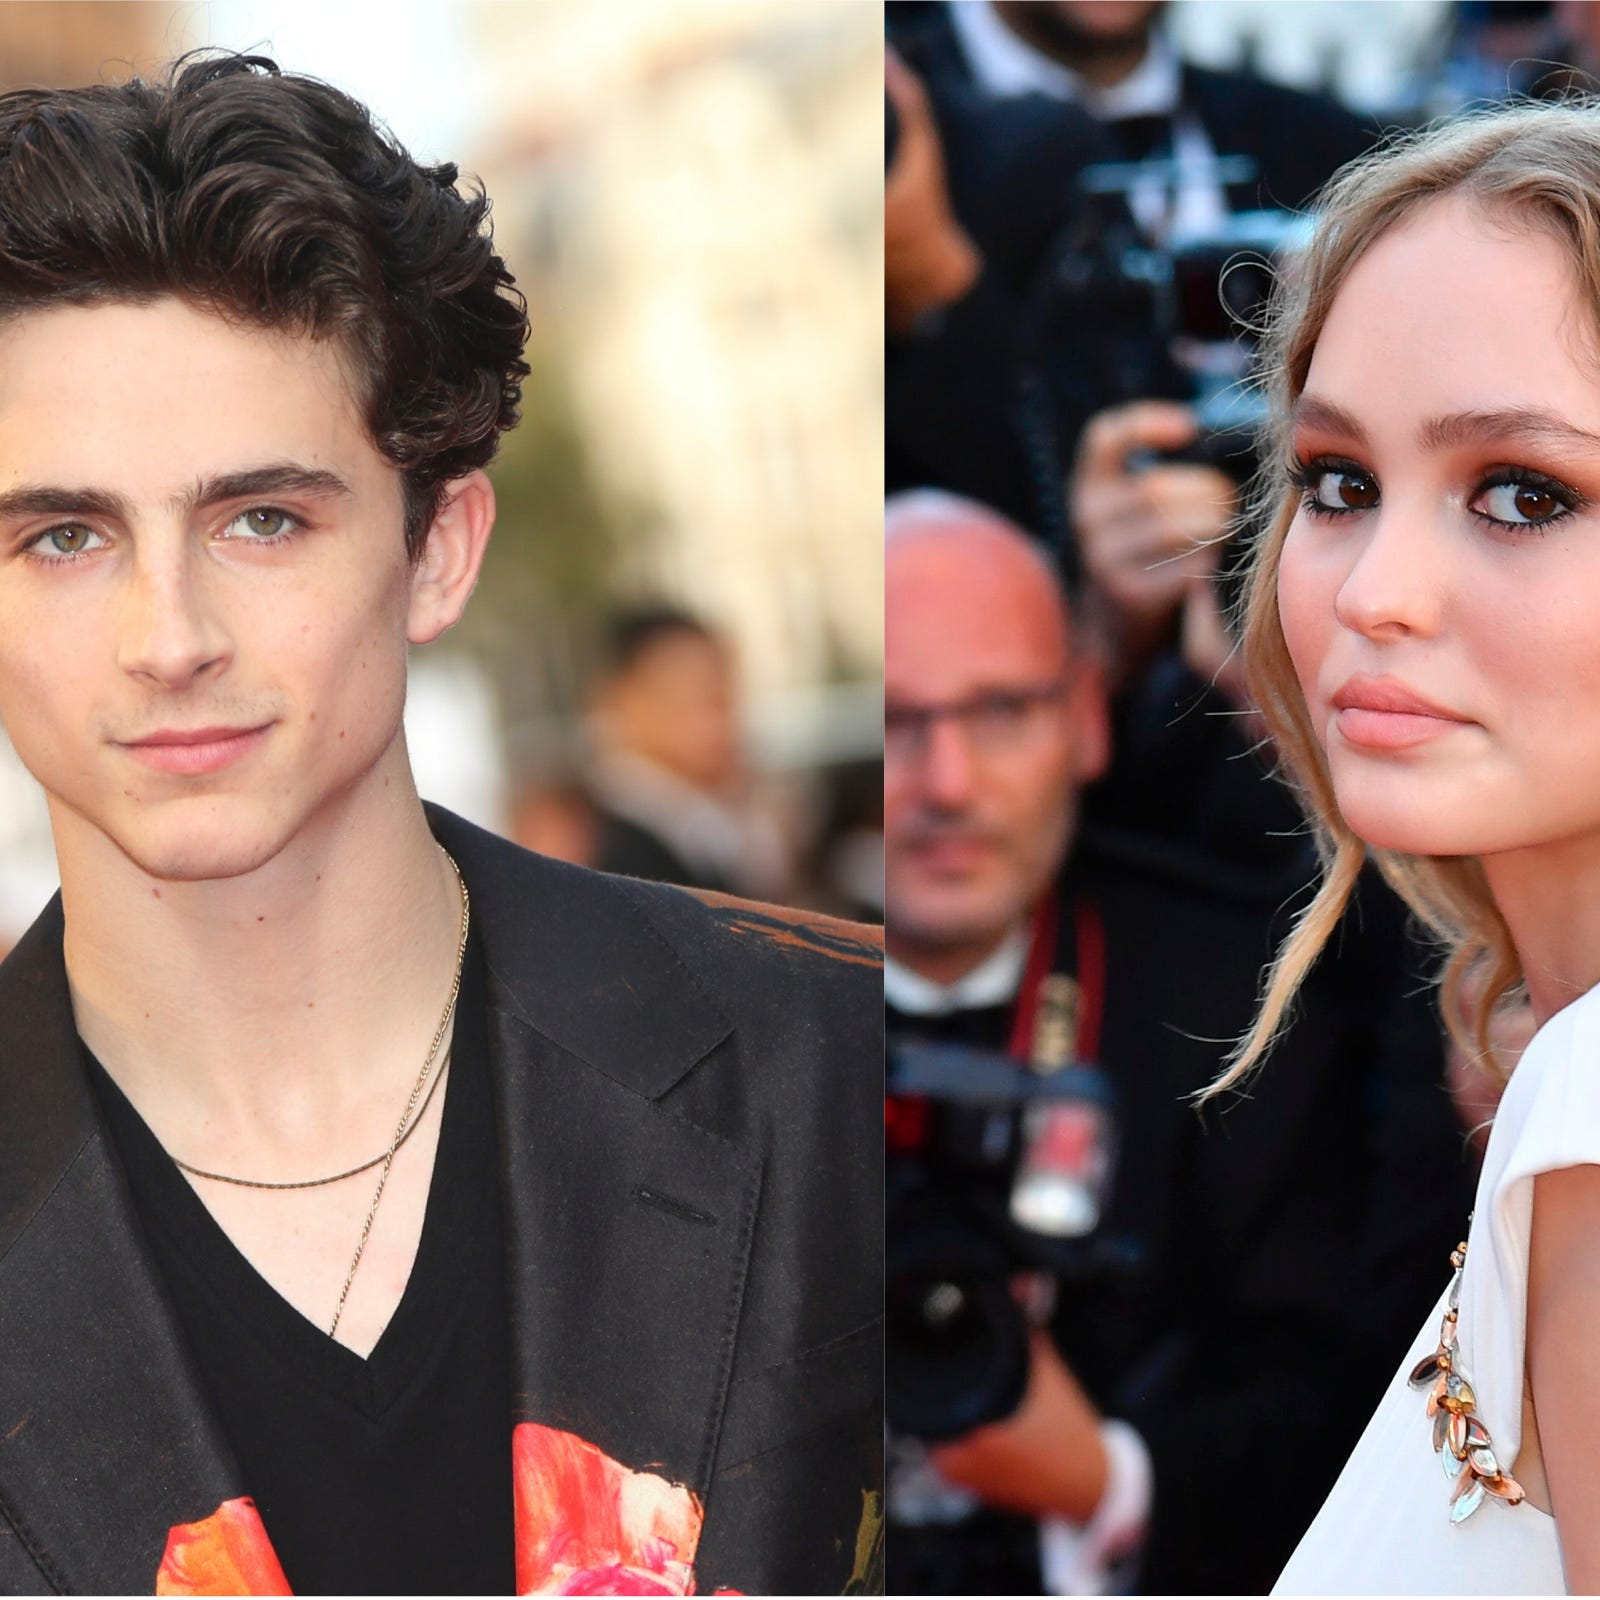 Timothée Chalamet and Lily-Rose Depp seemed to confirm a romance with a very public kiss.